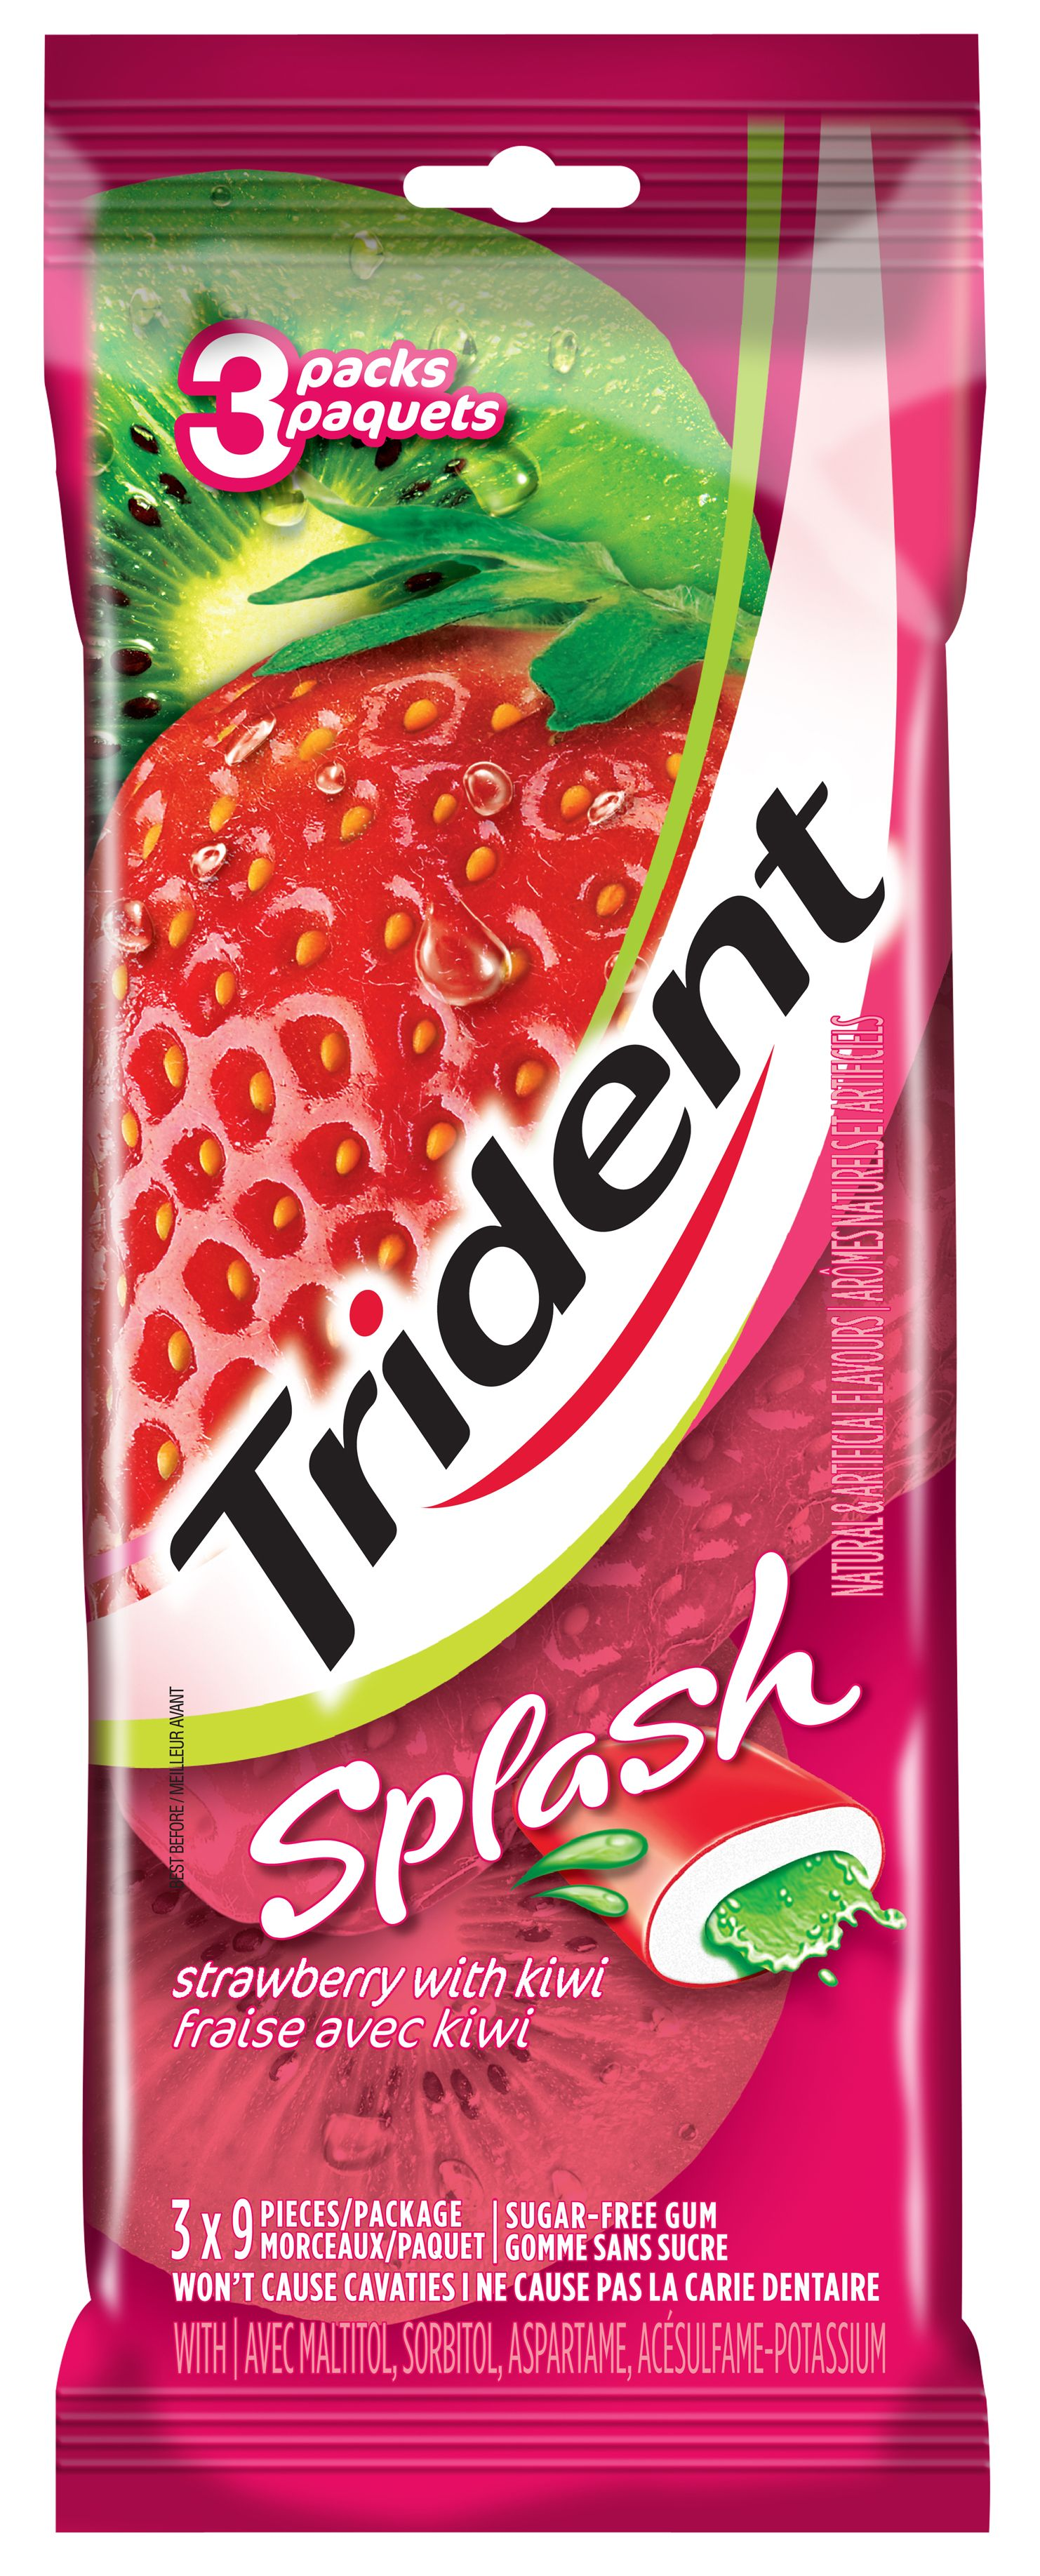 Trident Splash Strawberry Kiwi Gum 27 Count